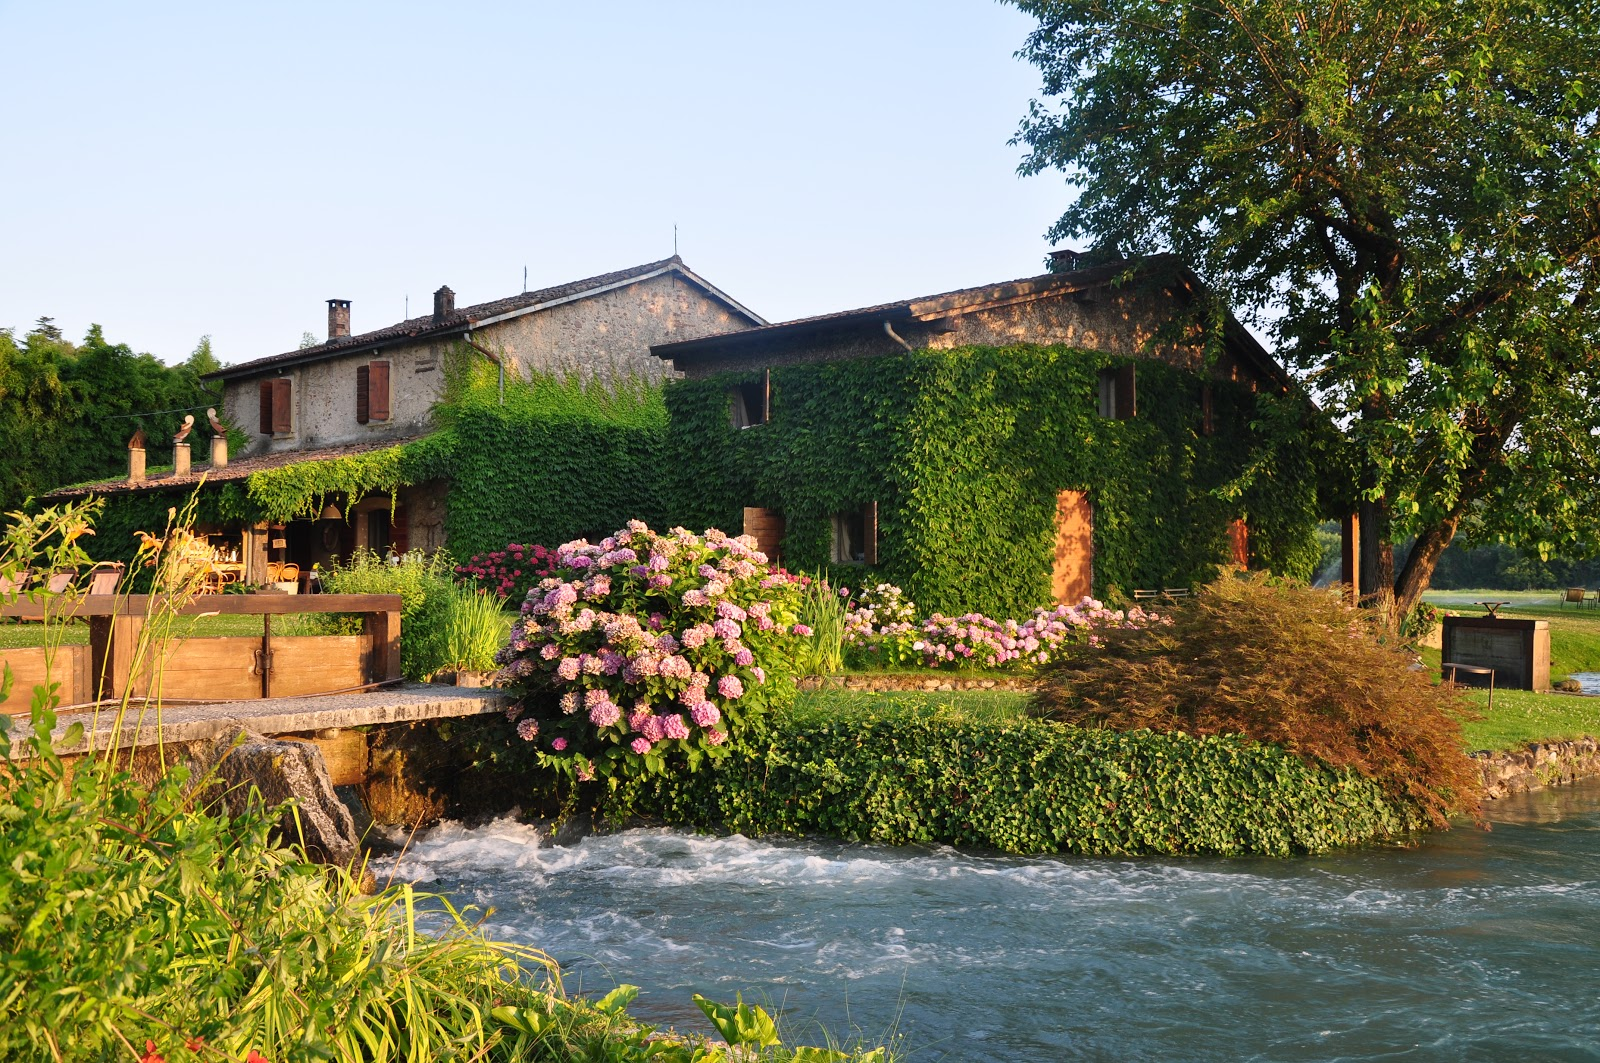 On the other side of the Visconti Bridge lies another medieval B&B, La Finestra Sul Fiume. Photo: Courtesy of La Finestra Sul Fiume.